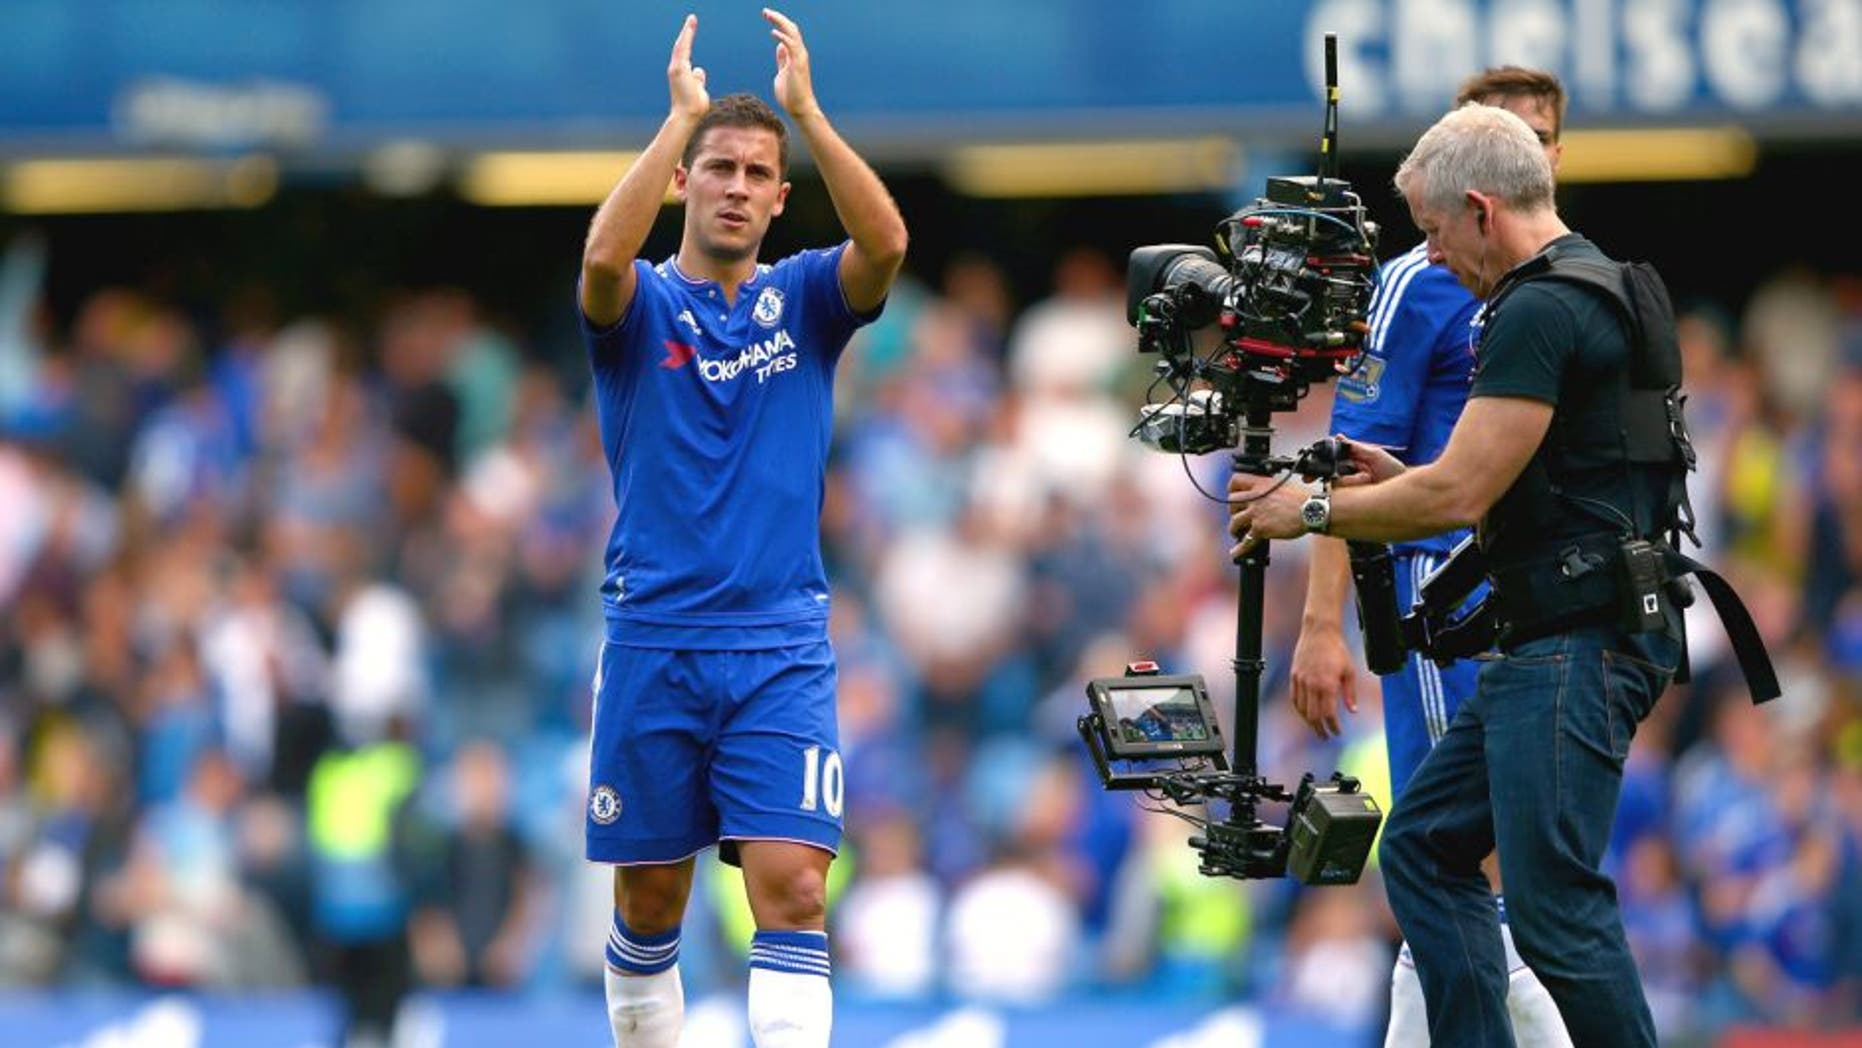 LONDON, ENGLAND - SEPTEMBER 19: Eden Hazard of Chelsea celebrates his team's 2-0 win in the Barclays Premier League match between Chelsea and Arsenal at Stamford Bridge on September 19, 2015 in London, United Kingdom. (Photo by Ian Walton/Getty Images)